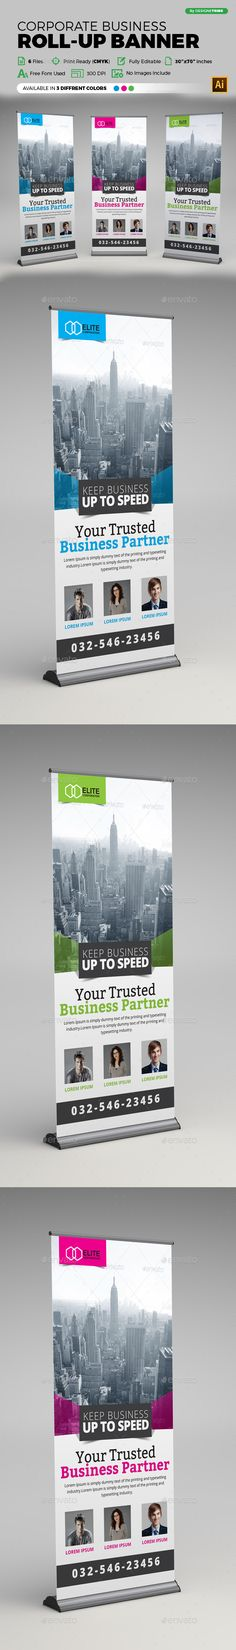 Buy Corporate Business Roll-up Banner by arsalanhanif on GraphicRiver. Corporate Business Roll-up Banner Template. This layout is suitable for any business. Very easy to use and customize. Signage Design, Brochure Design, Banner Design, Cool Business Cards, Corporate Business, Rollup Design, Standee Design, Insurance Ads, Pop Up Banner